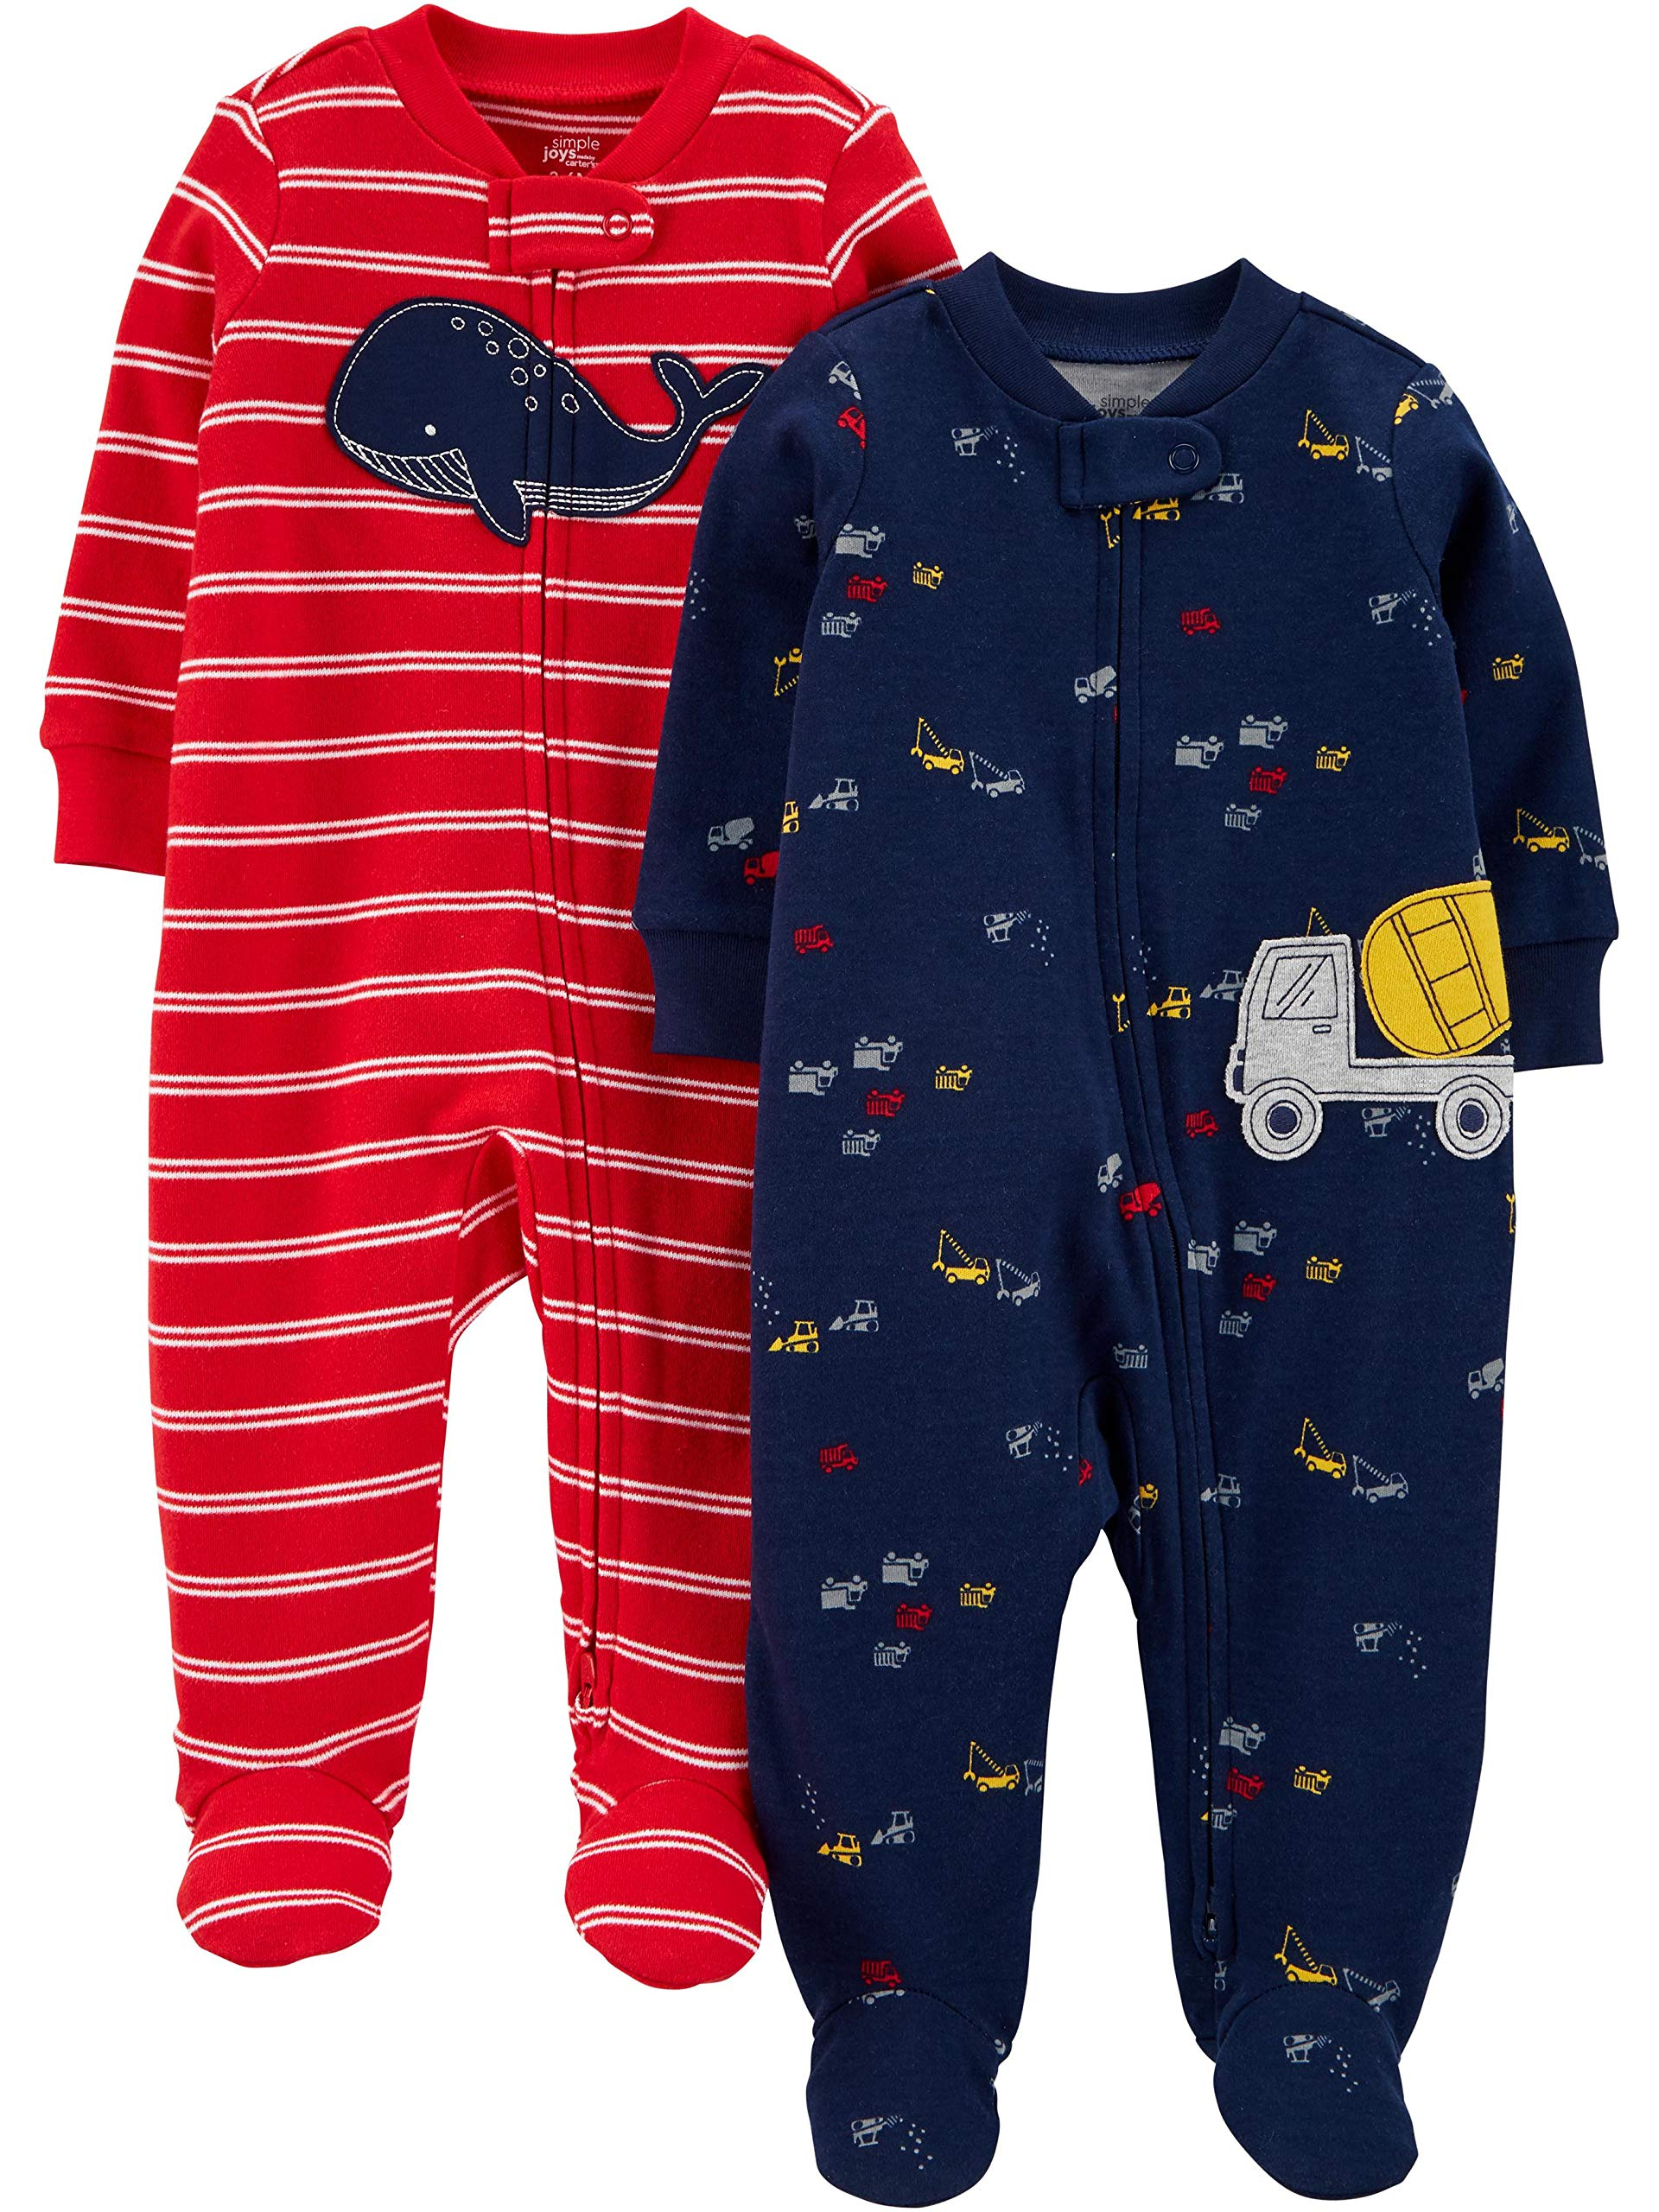 Boys' 2-Pack 2-Way Zip Cotton Footed Sleep and Play